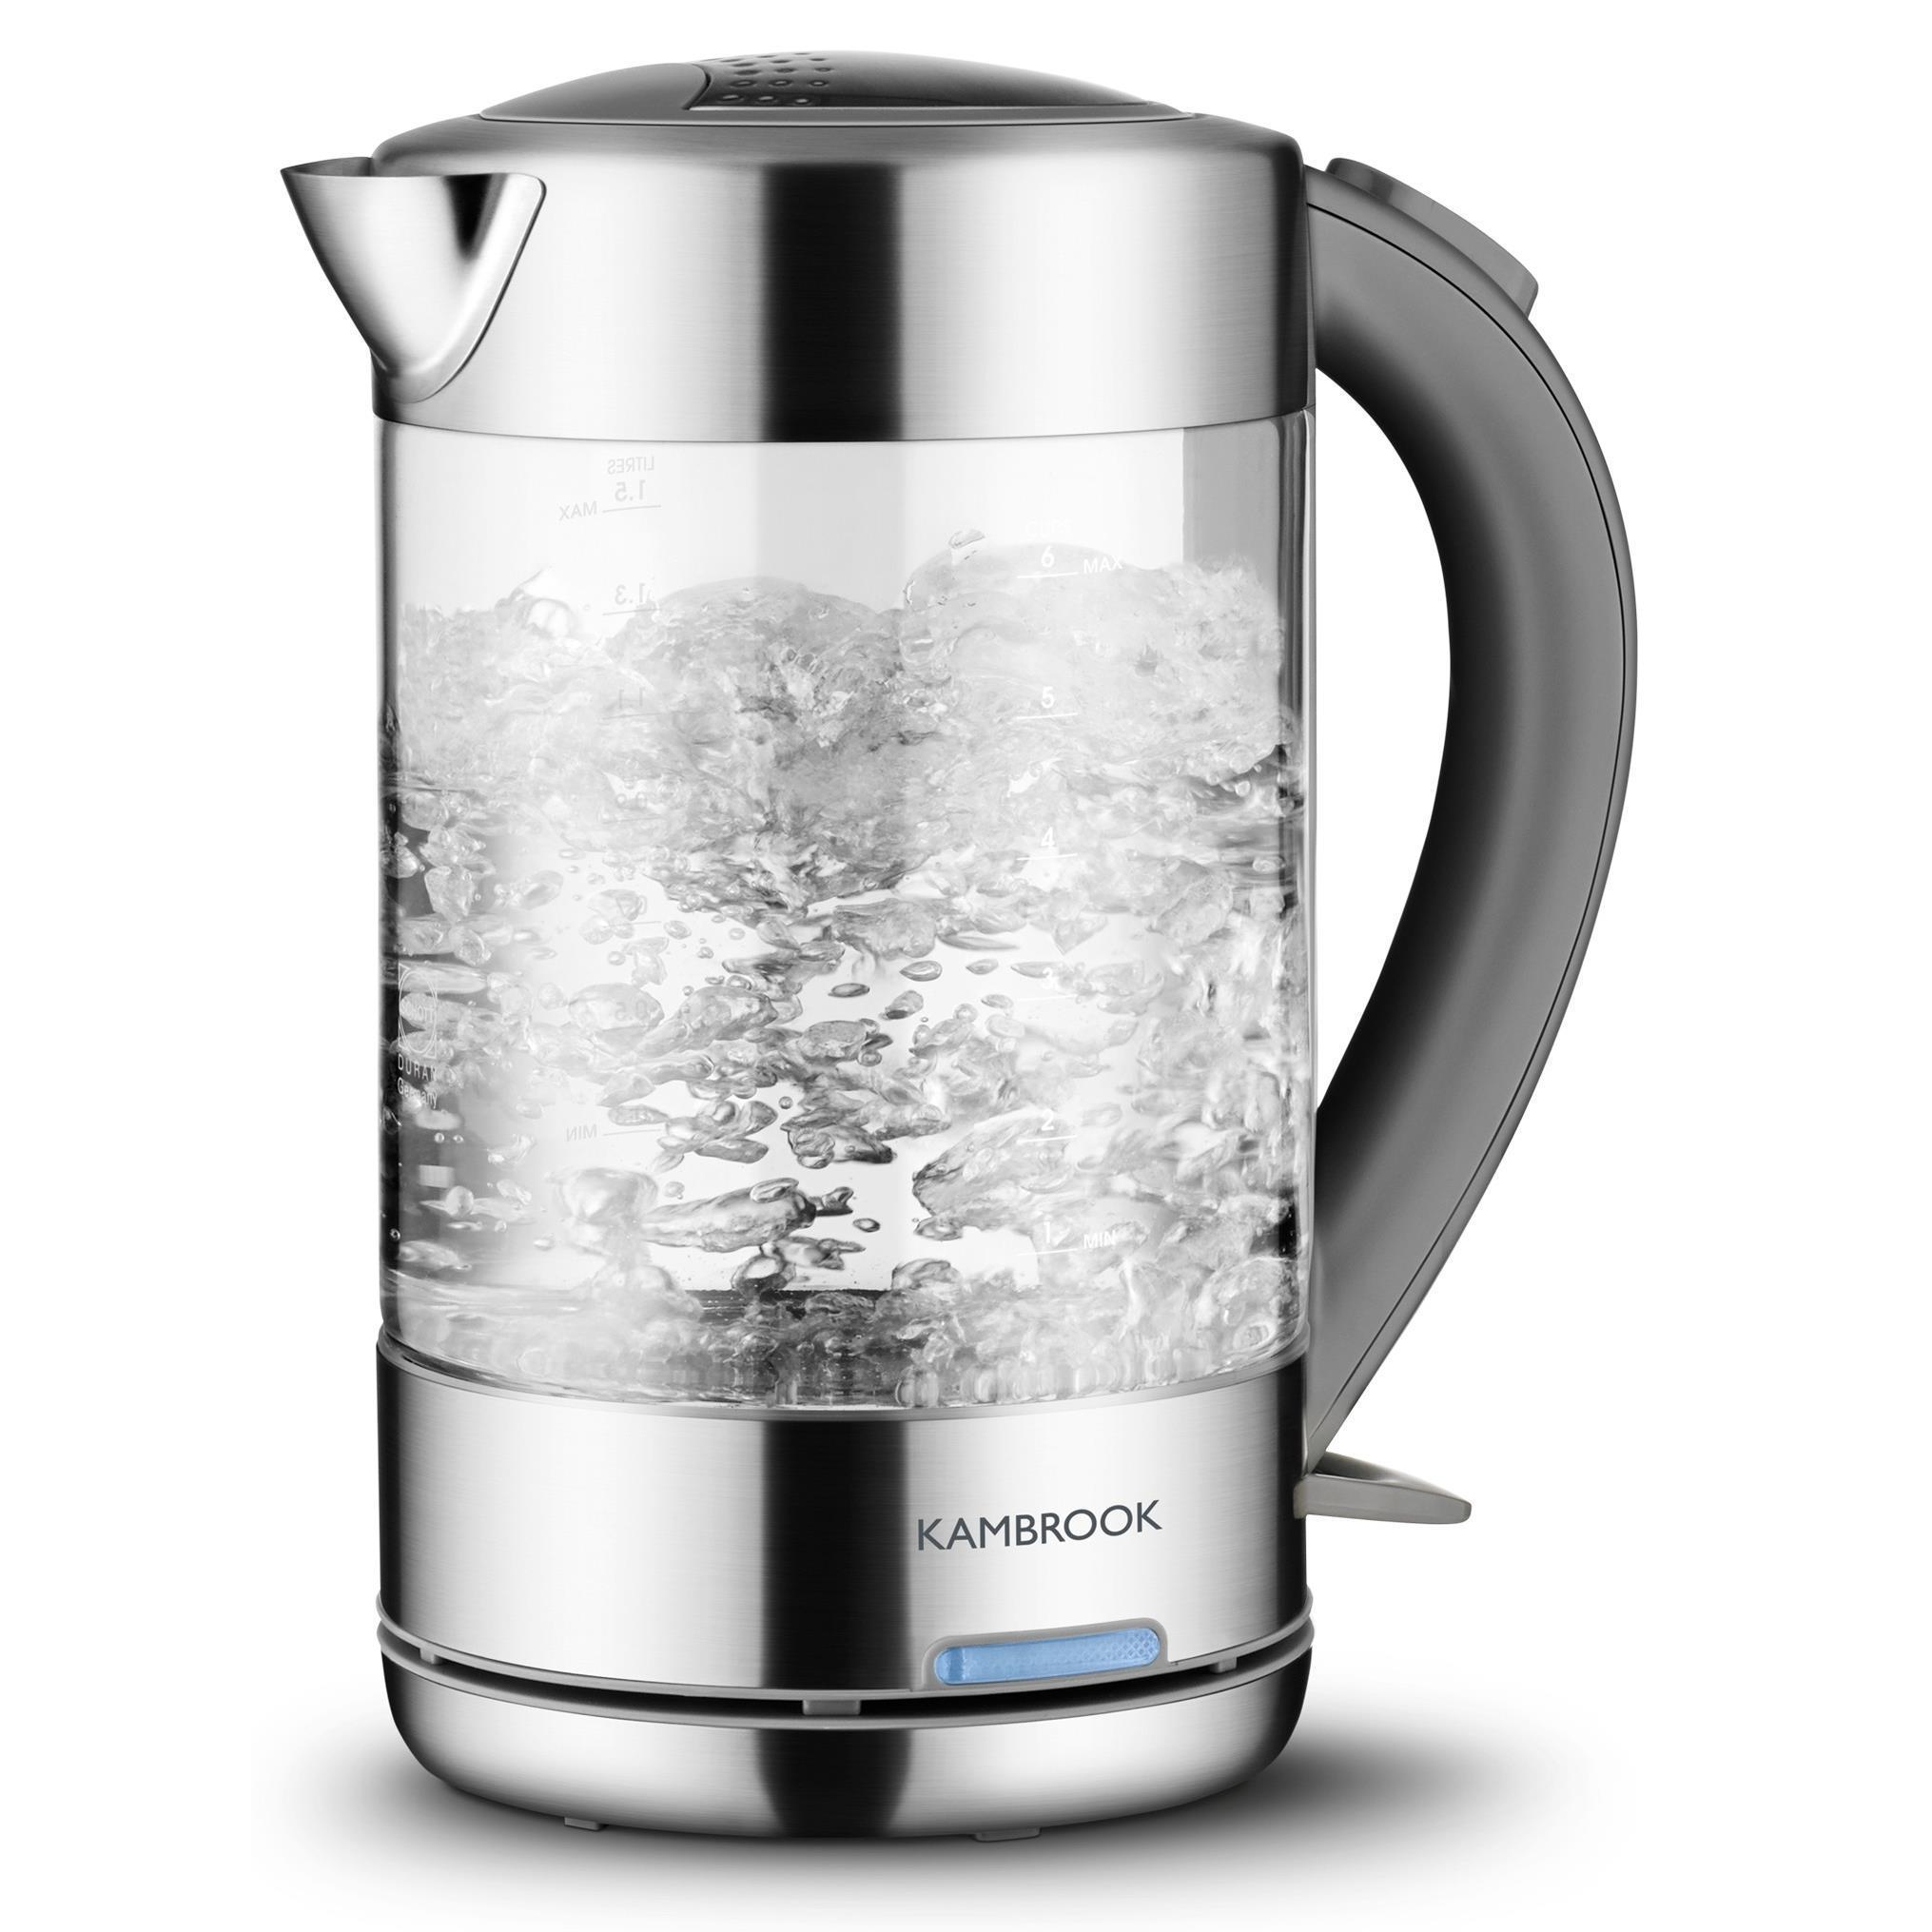 Kambrook 1.5L BPA Free Glass Kettle